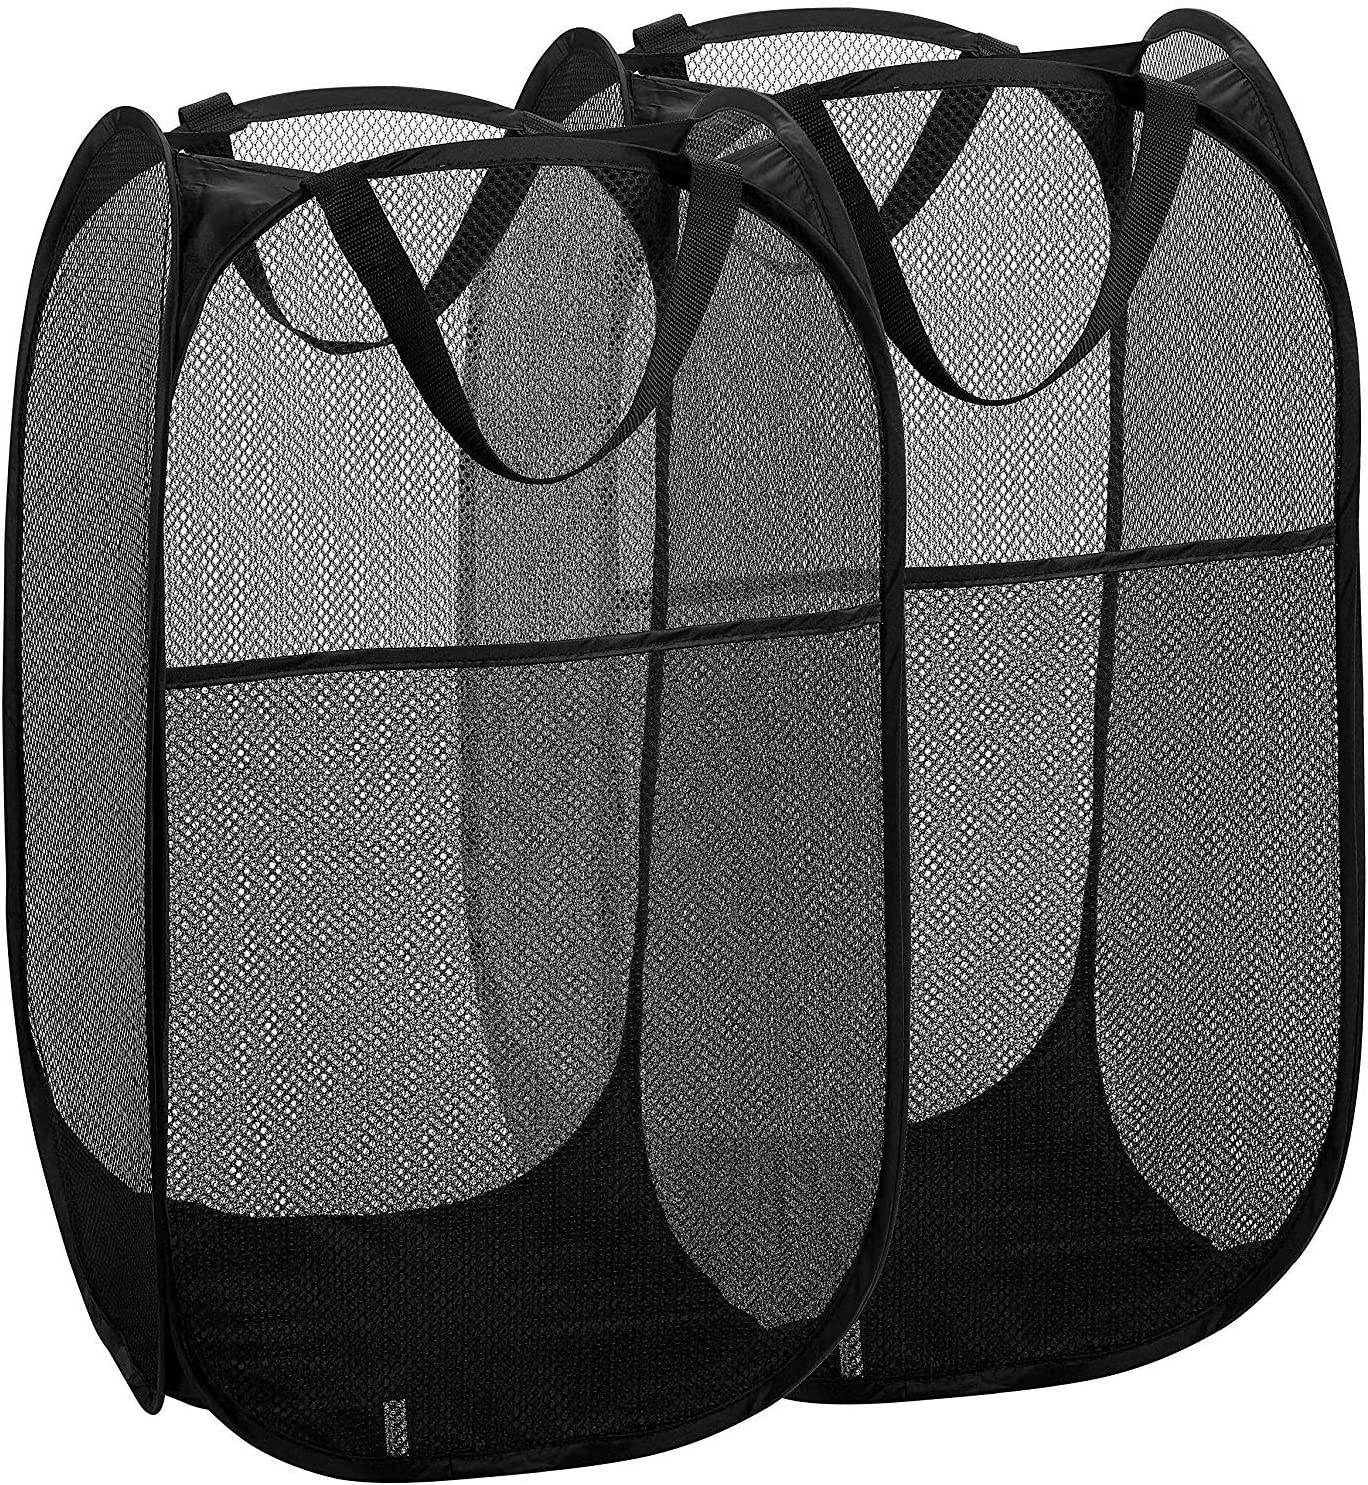 2 Packs Mesh Pop up Laundry Hamper (Black) with Portable, Durable Handles, Collapsible for Storage, Foldable Pop-Up Laundry Bags for Kids Room, College Dorm or Travel